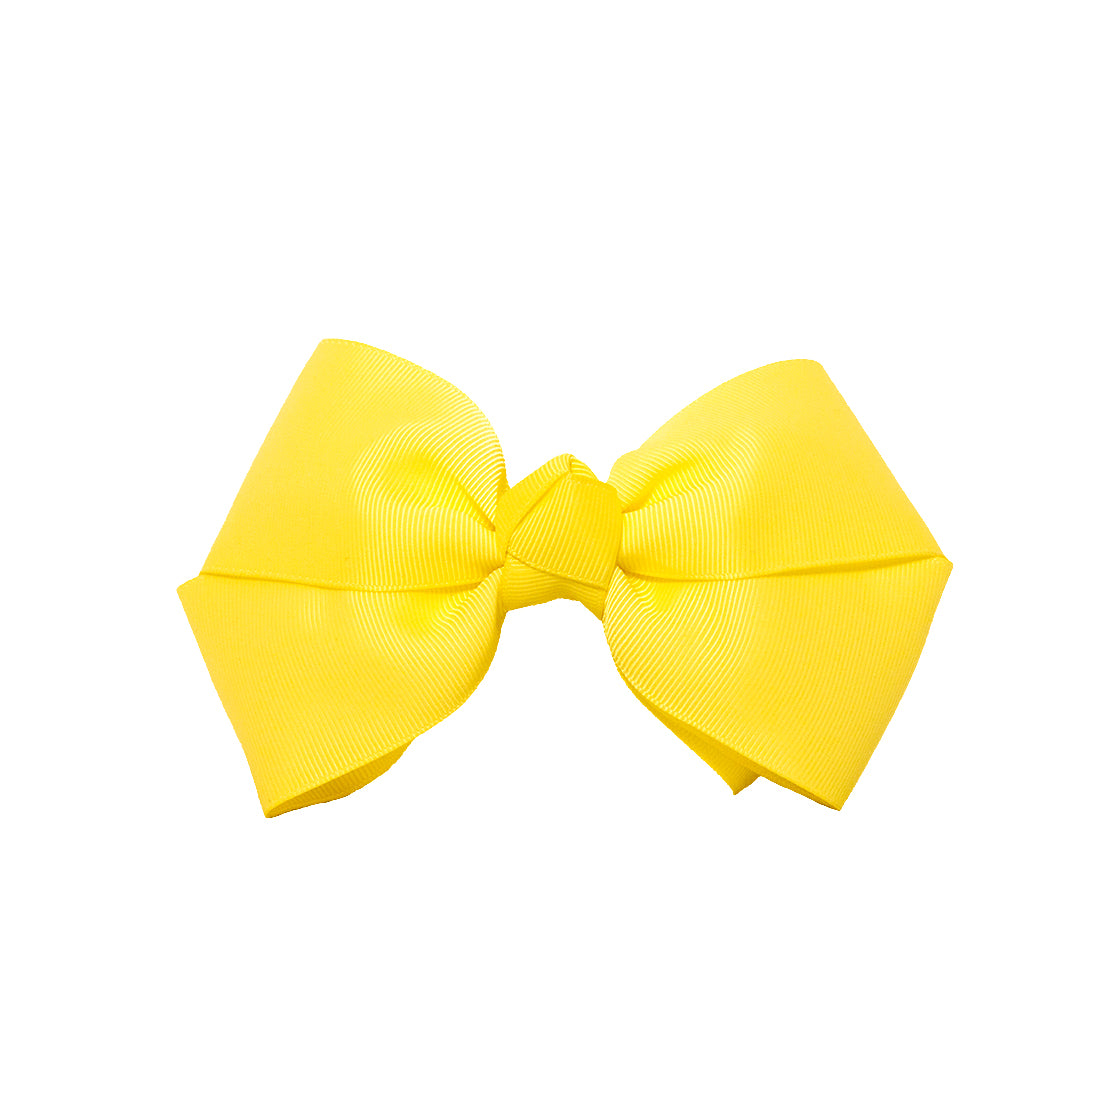 Mia® Spirit Bow Barrette - yellow color - designed by #MiaKaminski of Mia Beauty